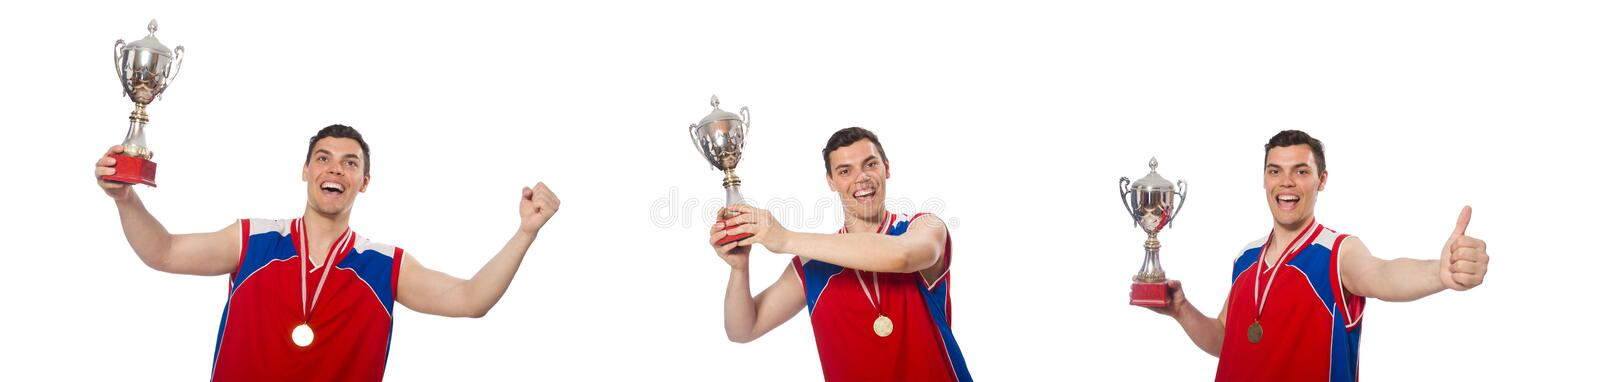 The young sportsman with cup isolated on white royalty free stock images